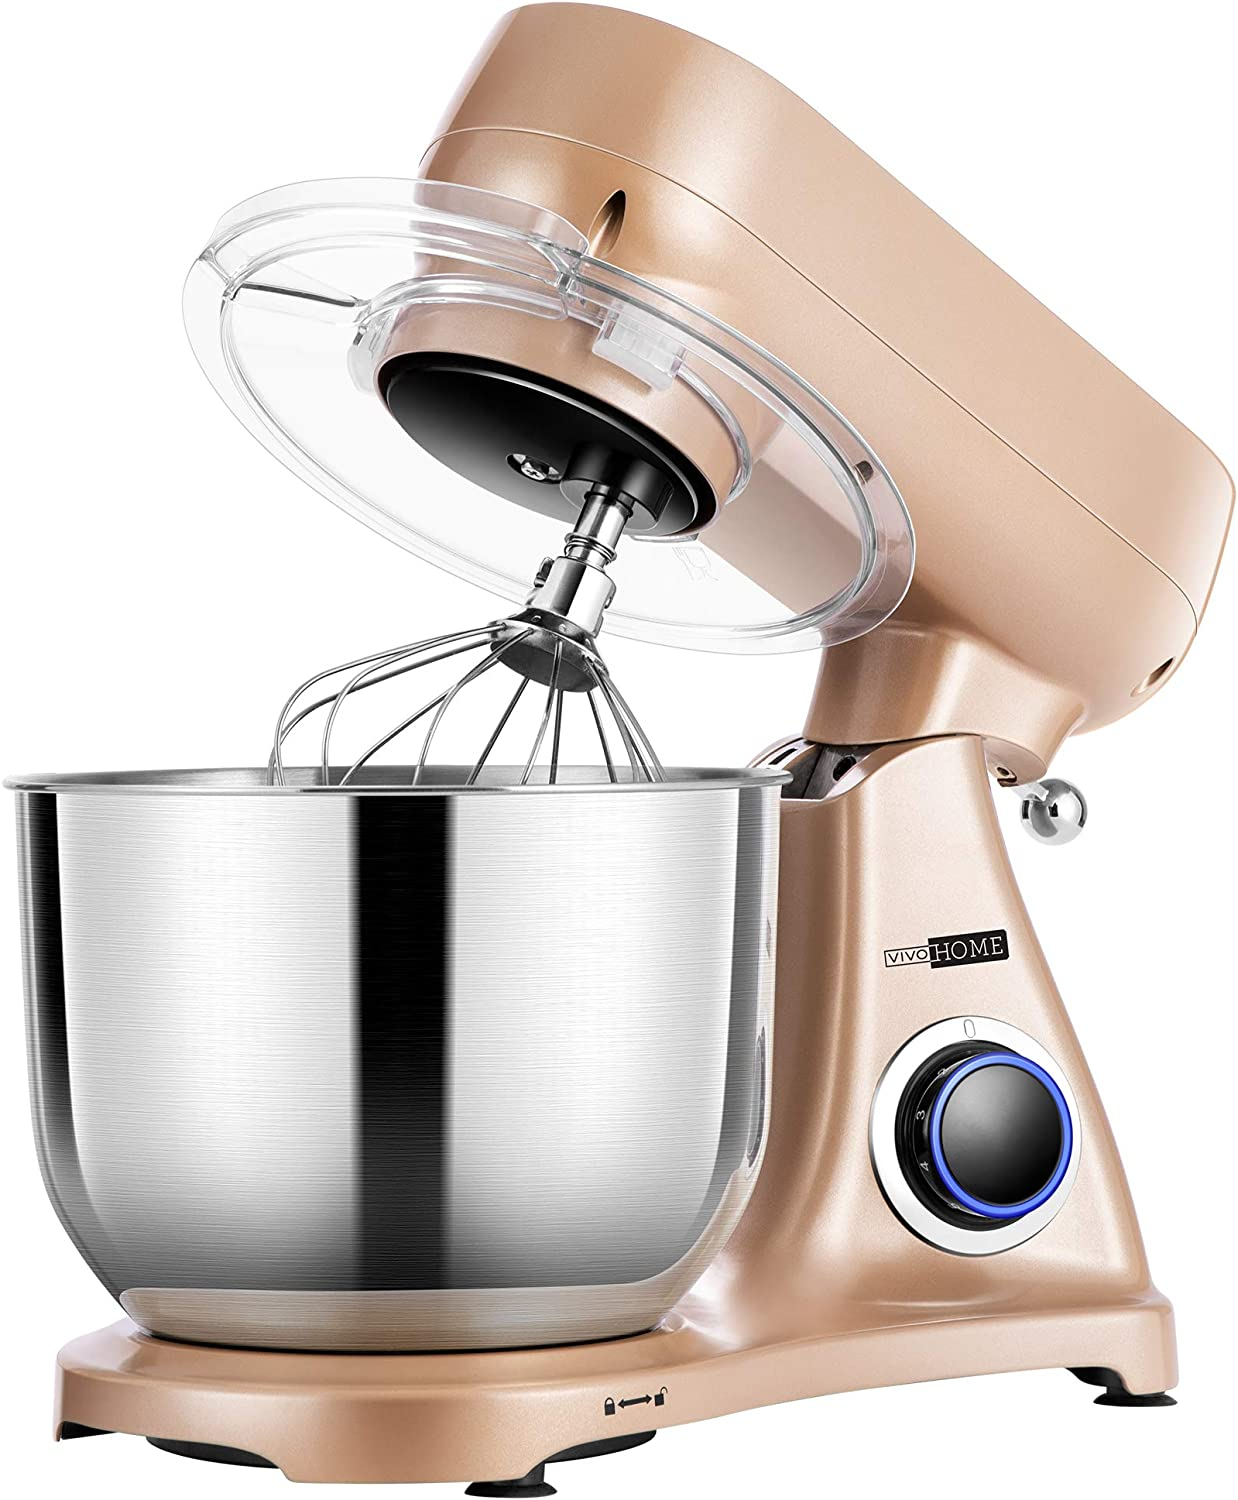 VIVOHOME 6.7 Quart 800W Stand Mixer with All-metal Housing, 6-Speed Tilt-Head Electric Food Mixer with Cast Aluminum Beater, Dough Hook and Whisk, Champagne, MET Listed